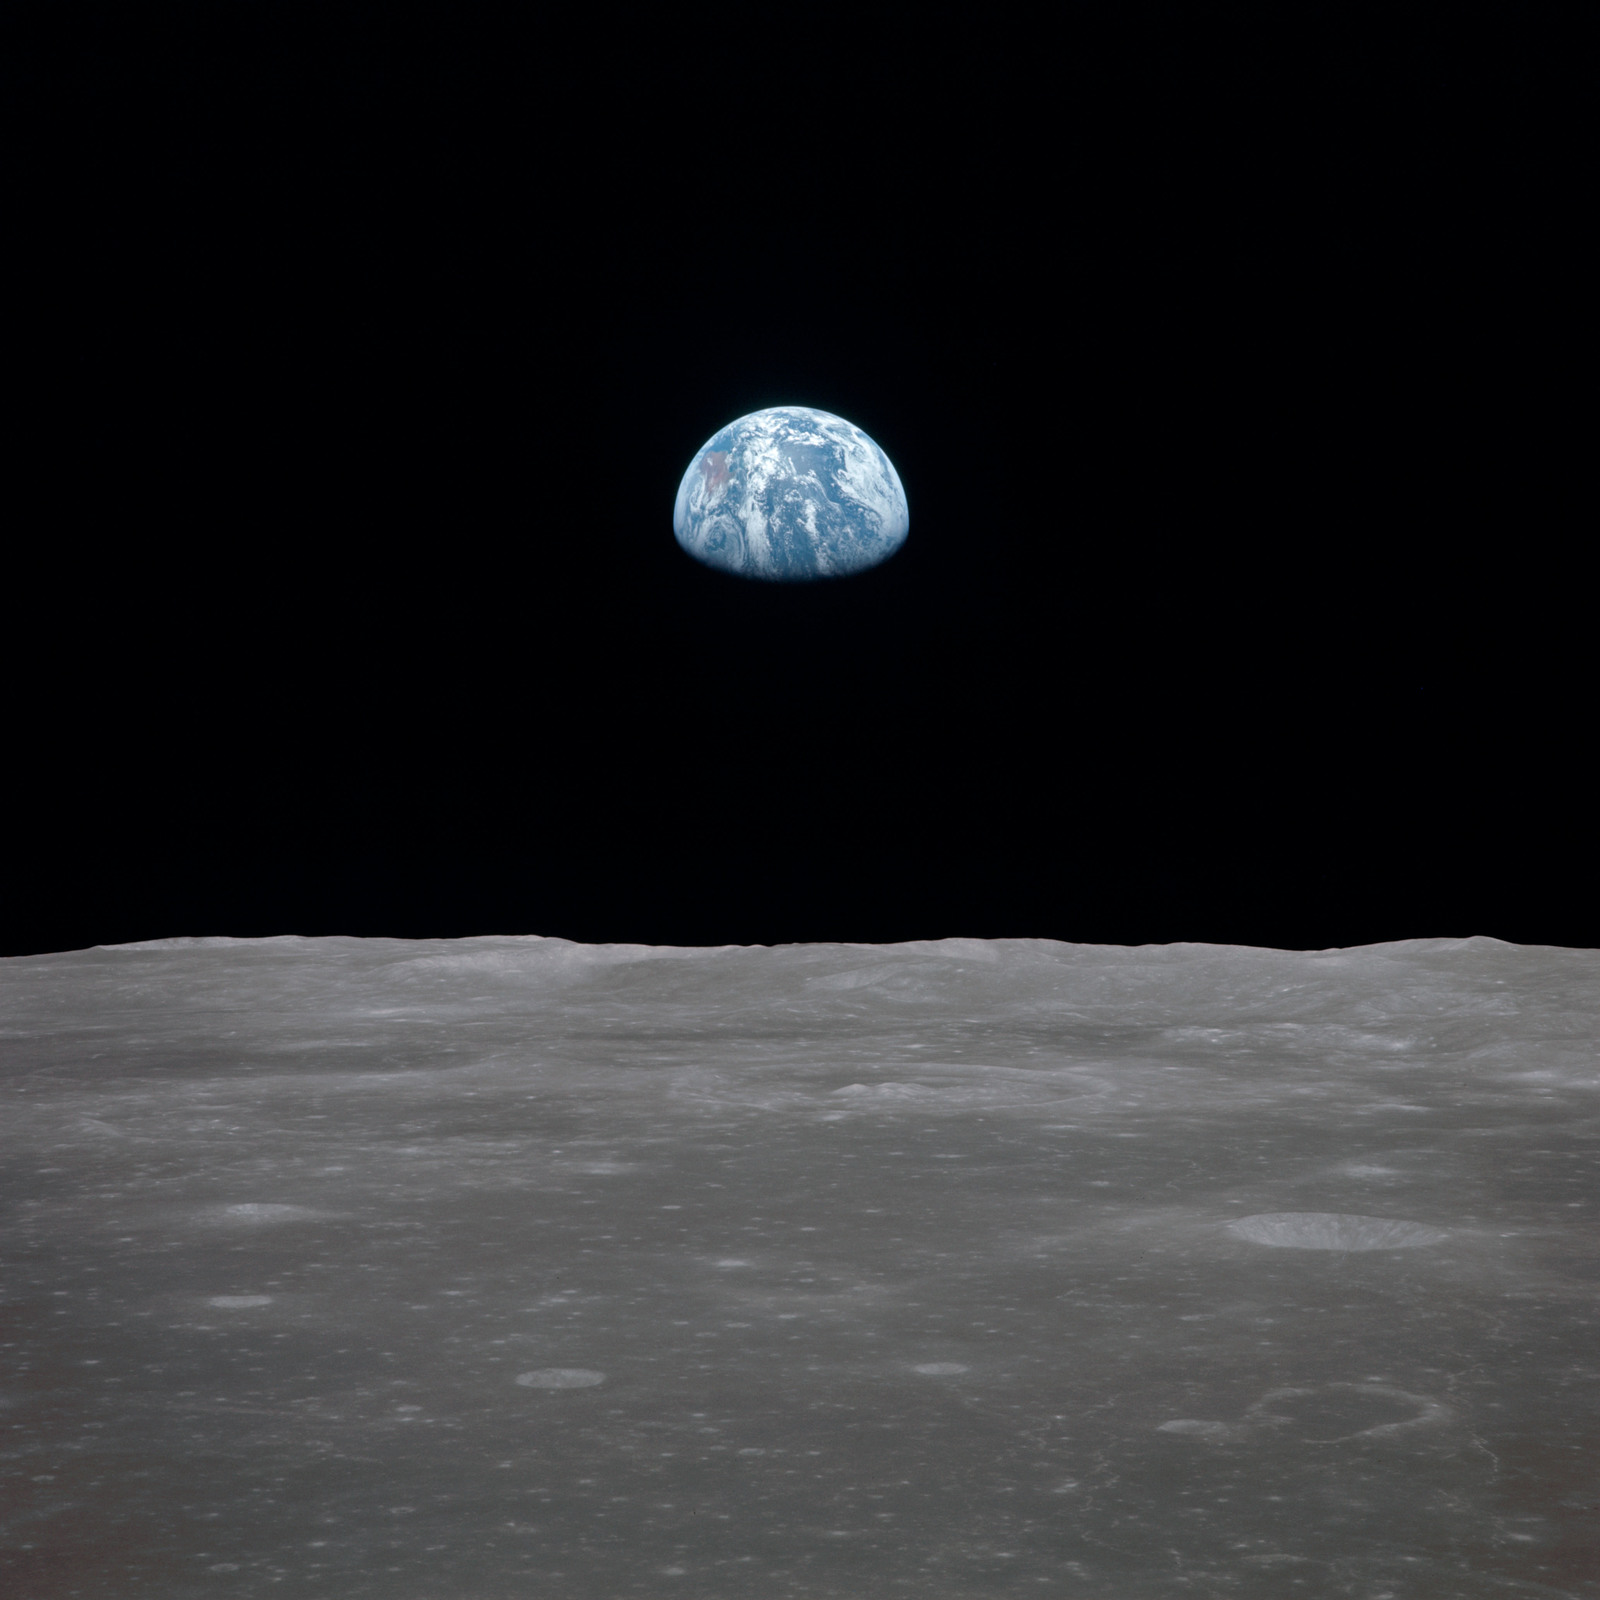 Buy Earth of view from moon picture trends